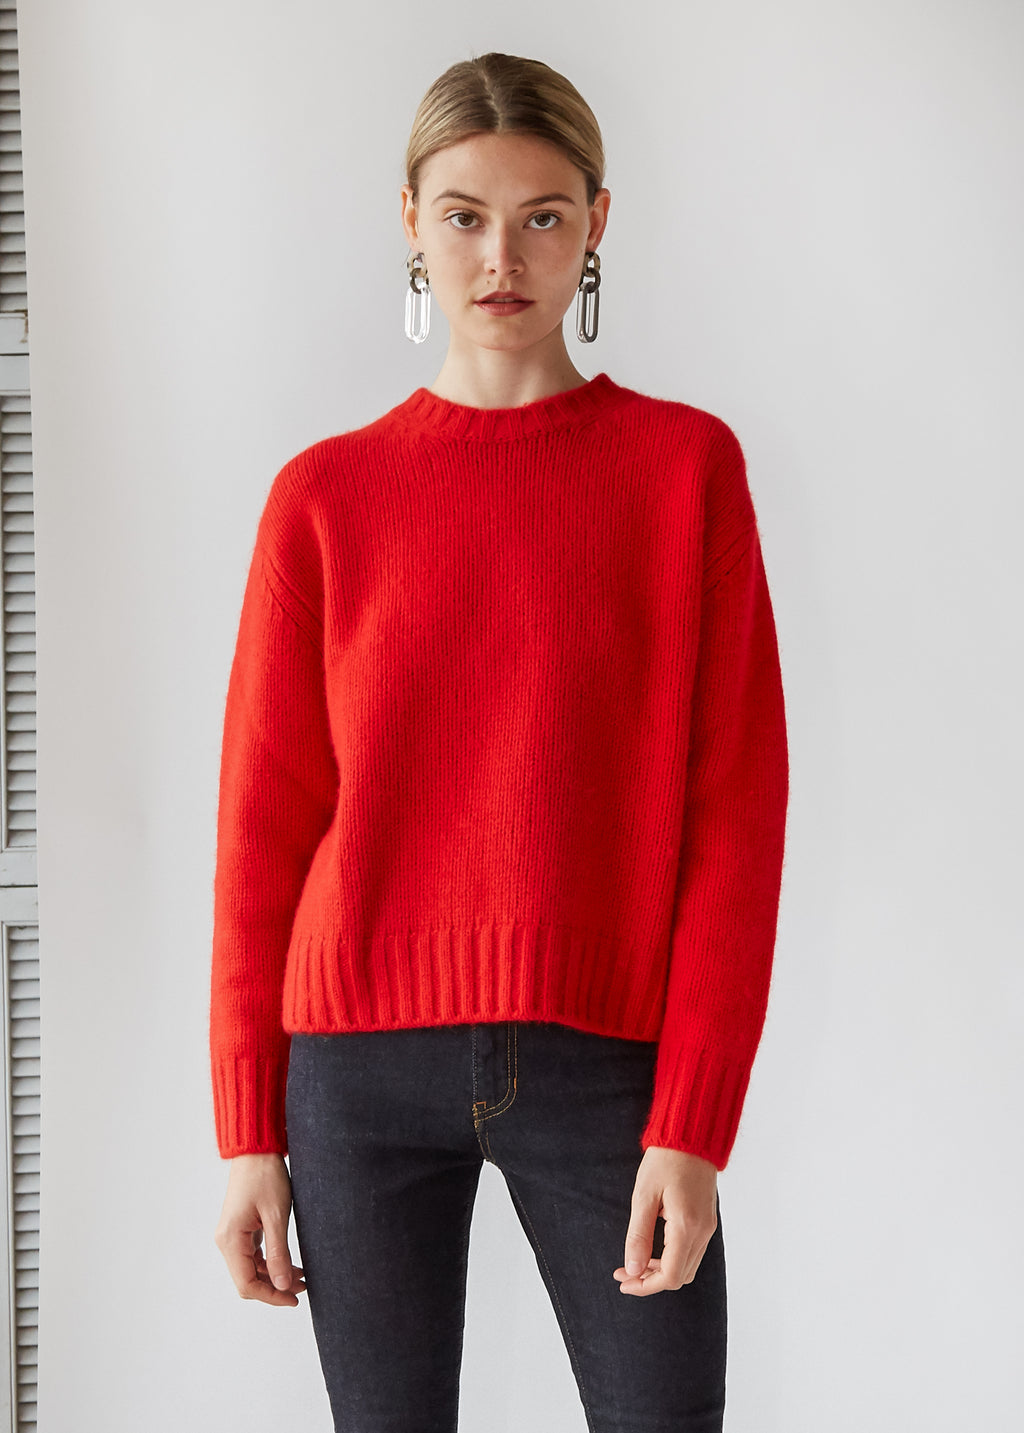 Knit Sweater in Red